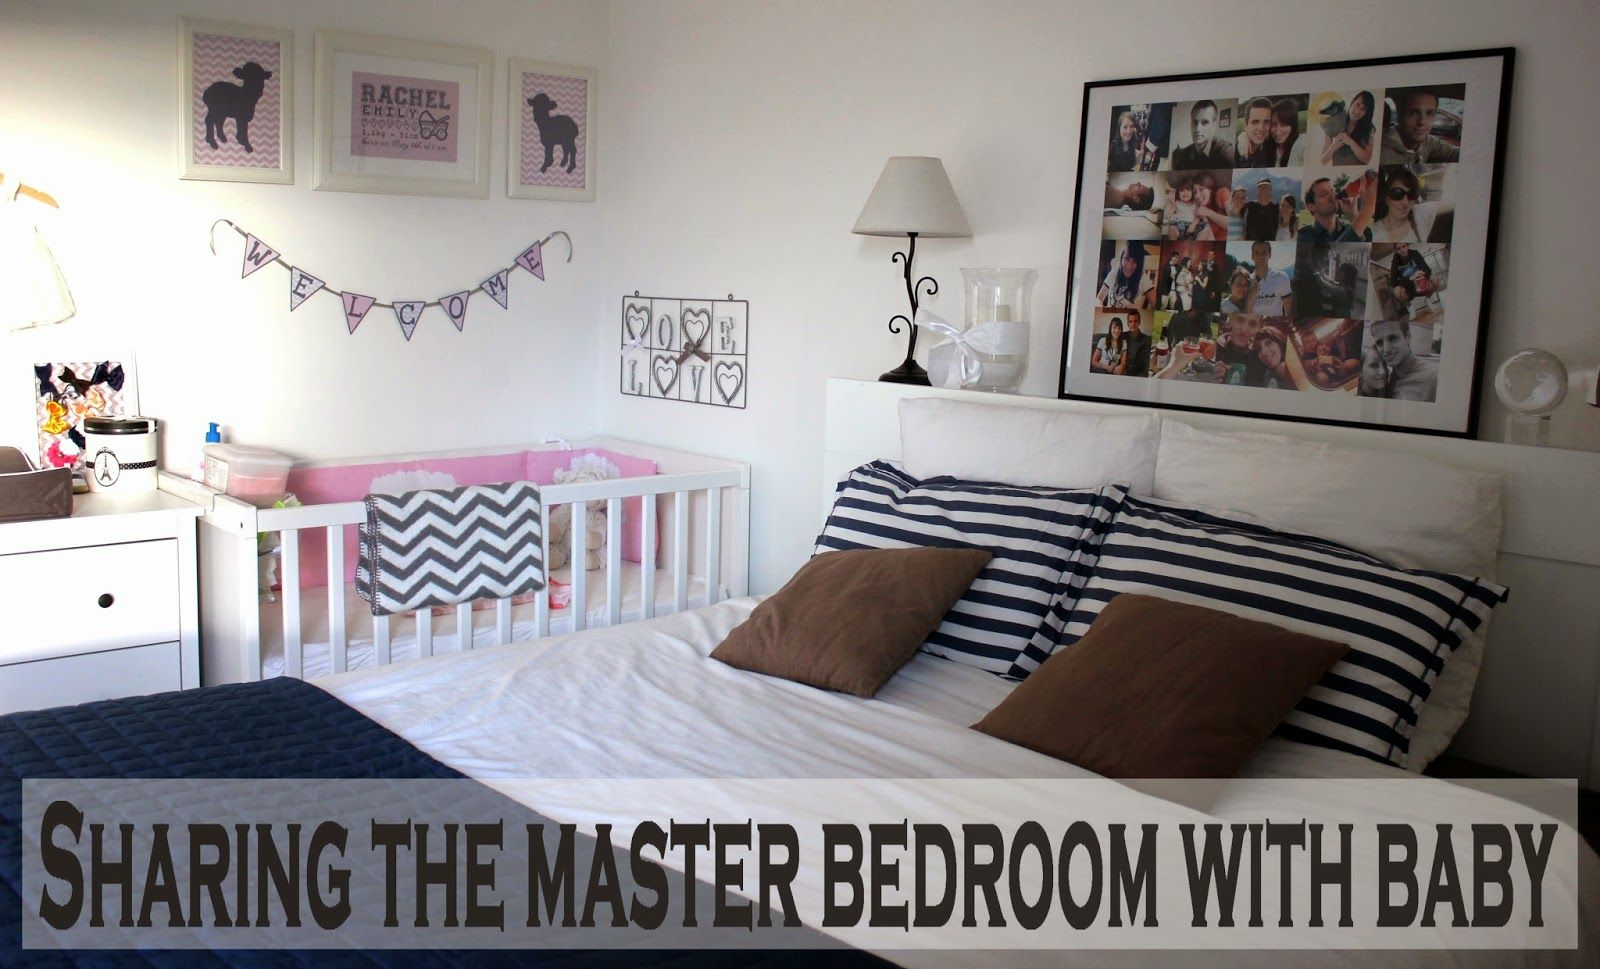 Baby bed with parents - Sharing The Master Bedroom With Baby